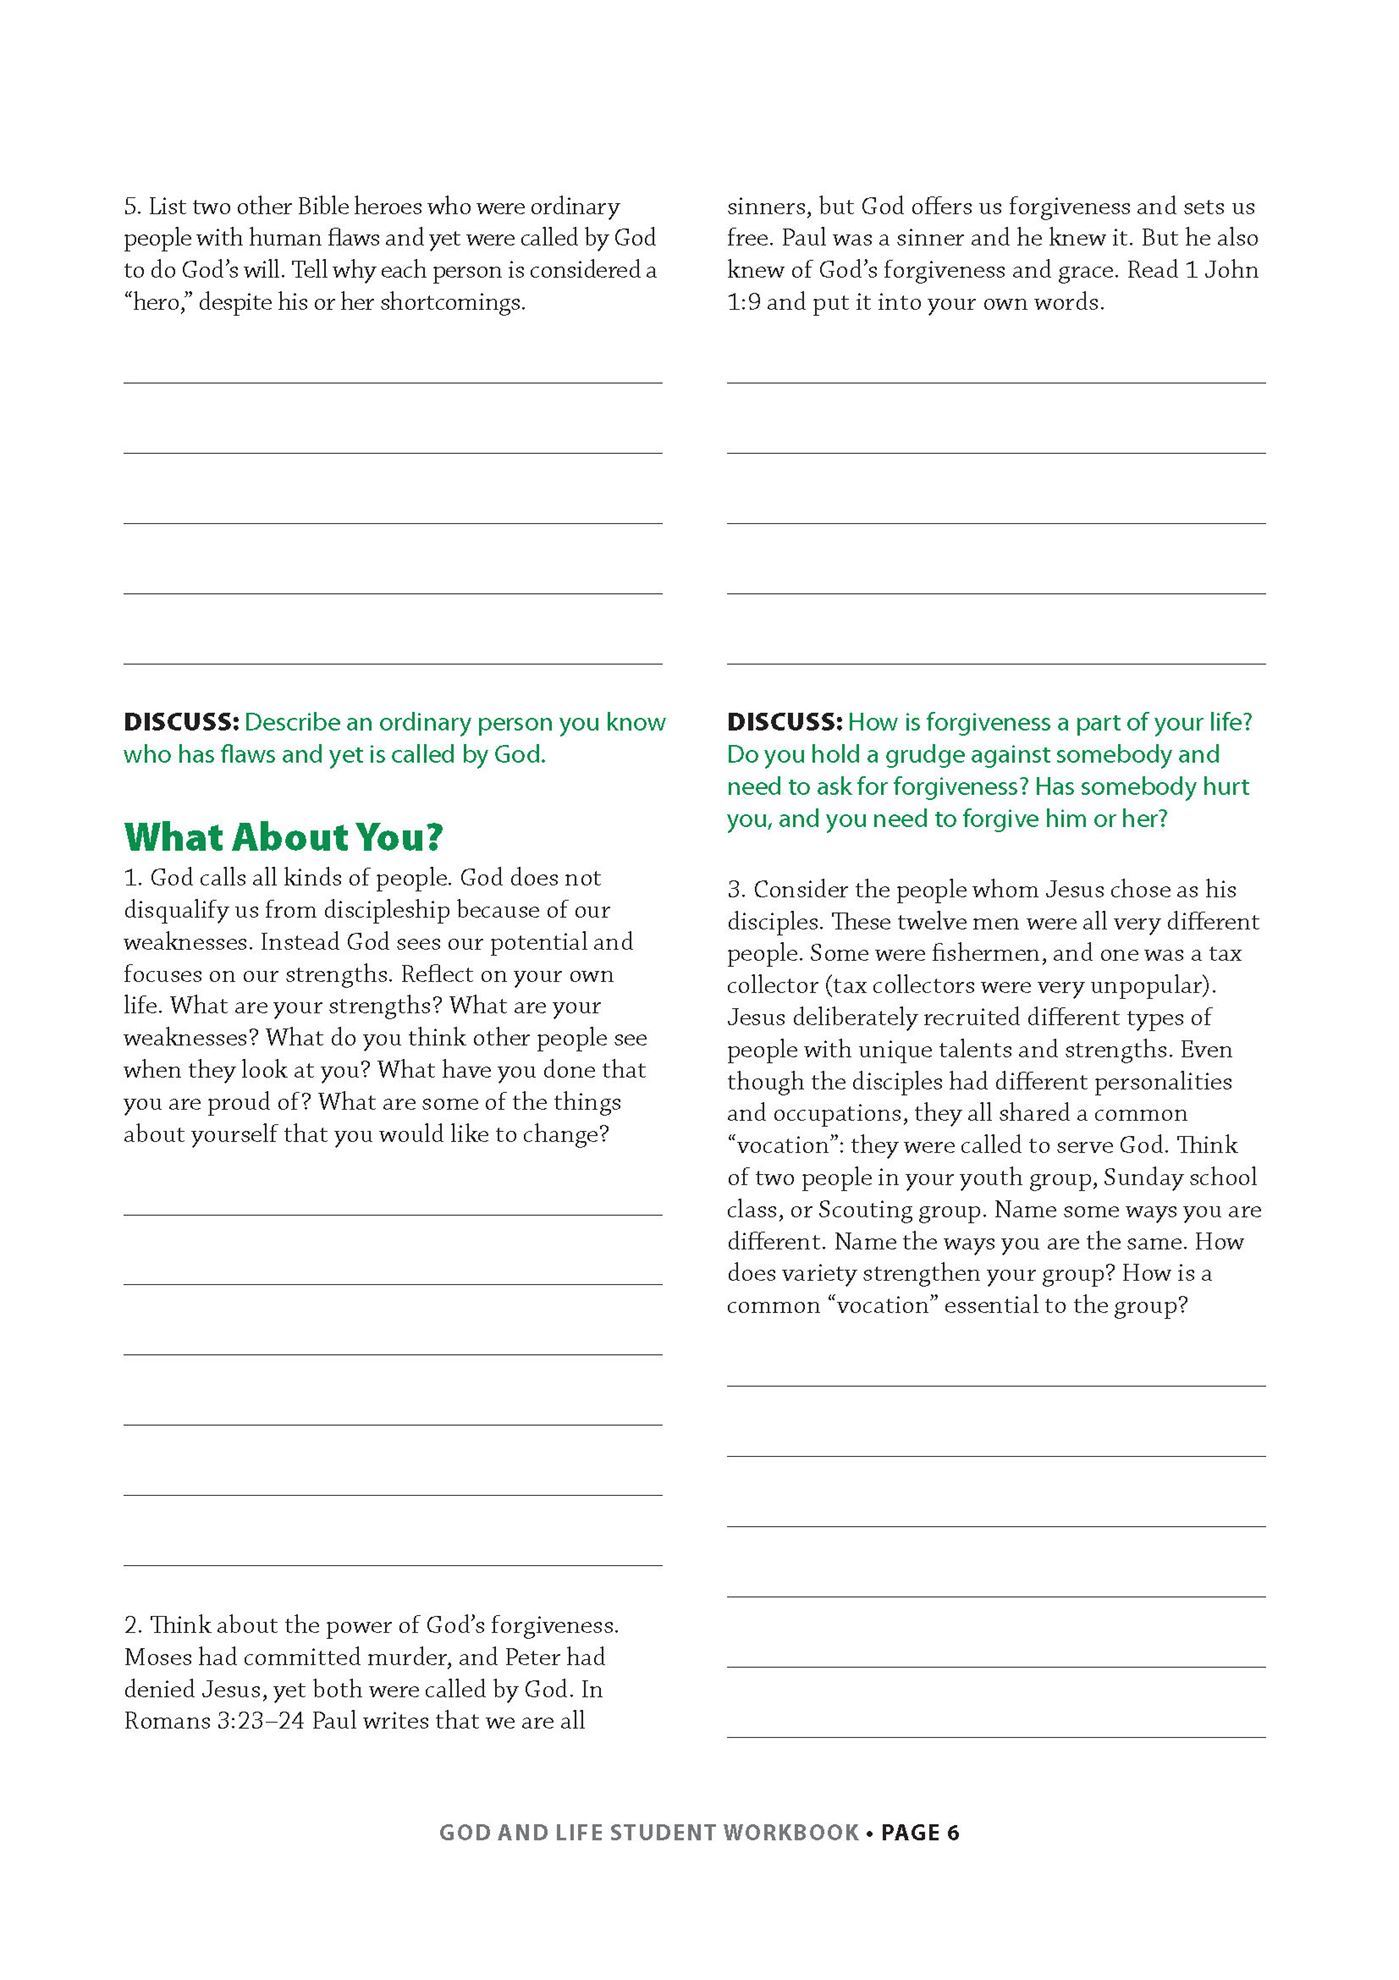 28 God And Life Student Workbook Answers